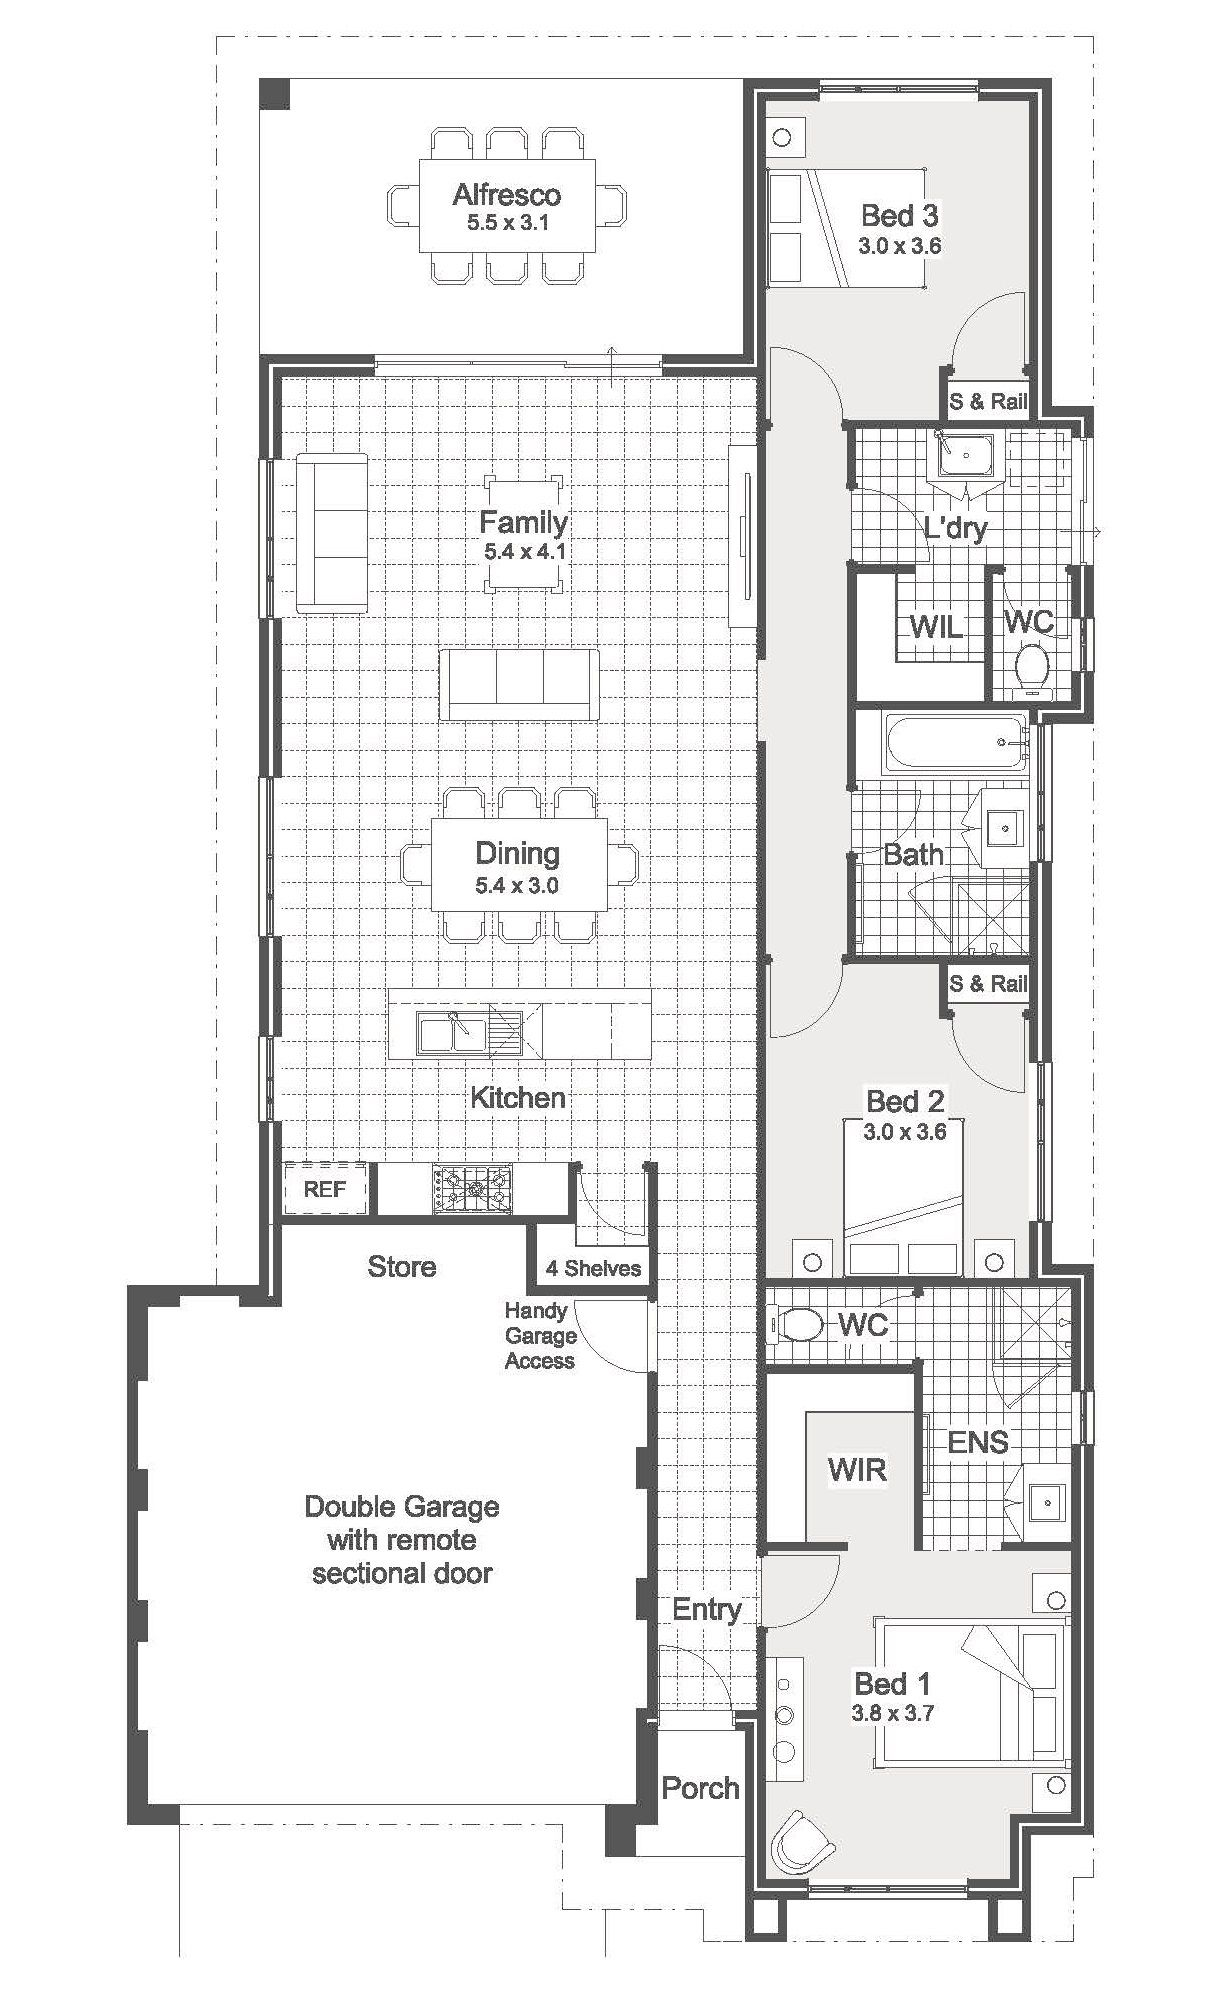 Three Bedroom Home Design Best Find A 3 Bedroom Home That's Right For Your From Our Current Range Design Decoration